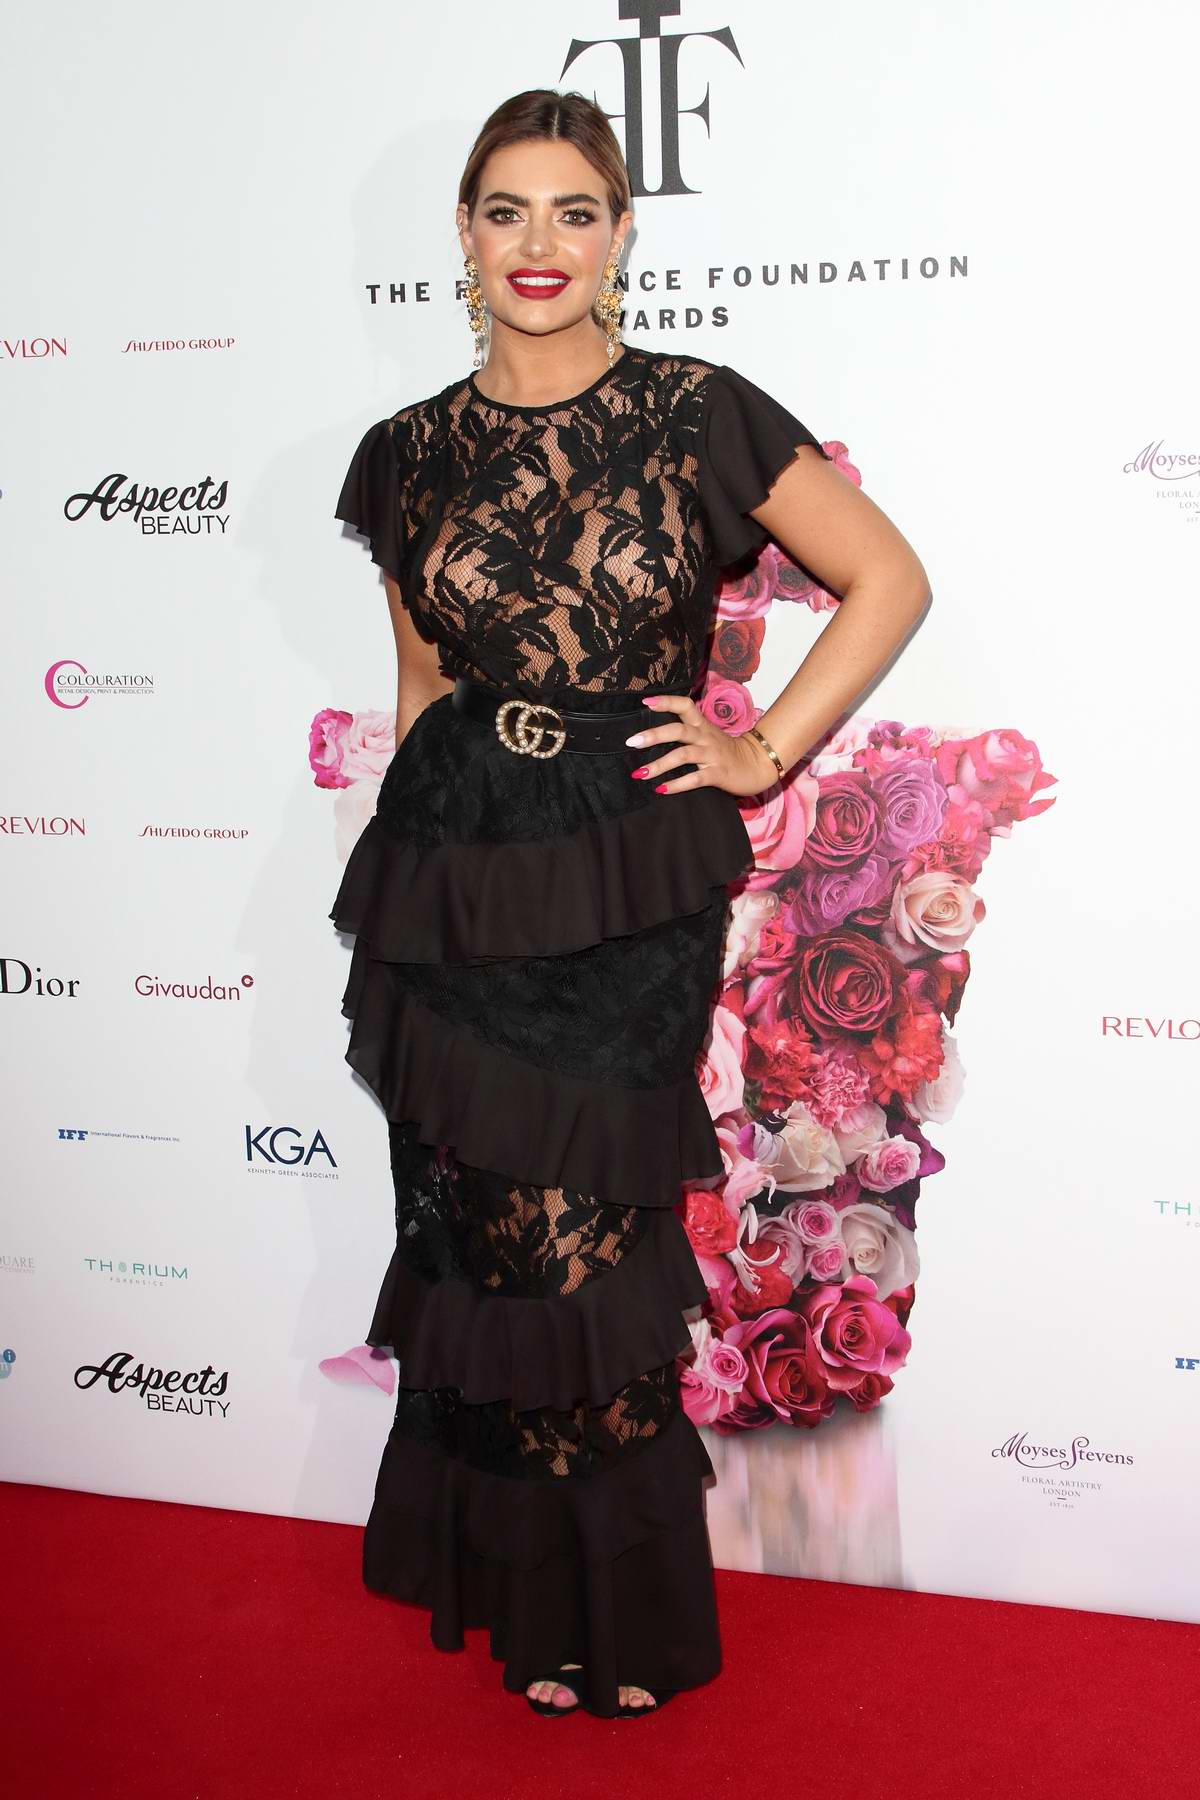 Megan Barton-Hanson attends the FiFi Fragrance Foundation Awards in London, UK